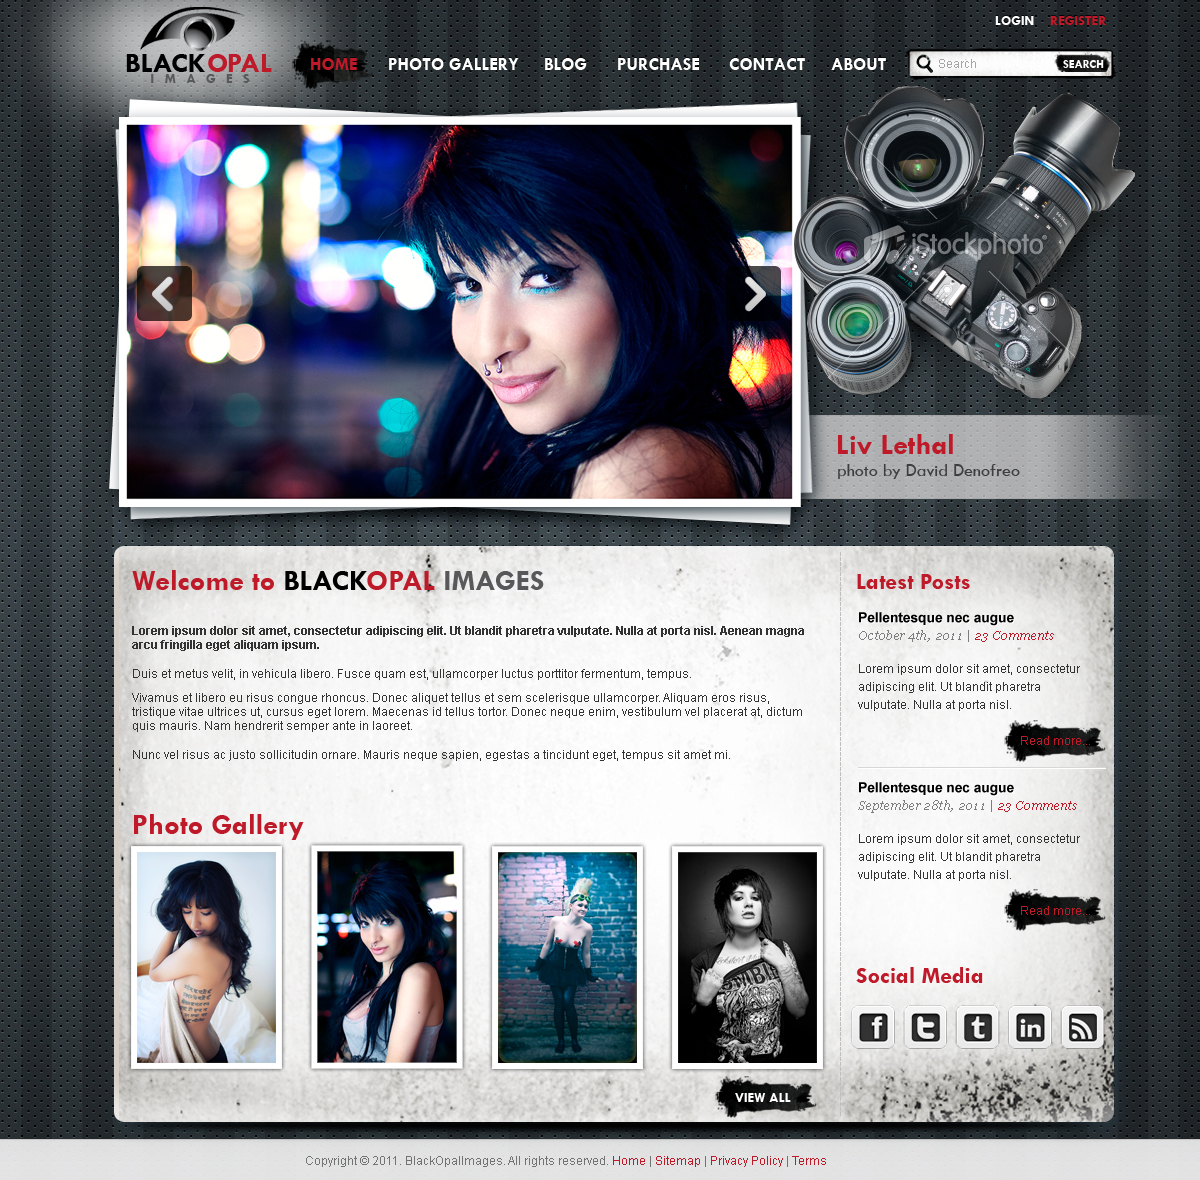 Web Page Design by Vladimir Koncos - Entry No. 26 in the Web Page Design Contest New Web Page Design for Black Opal Images.